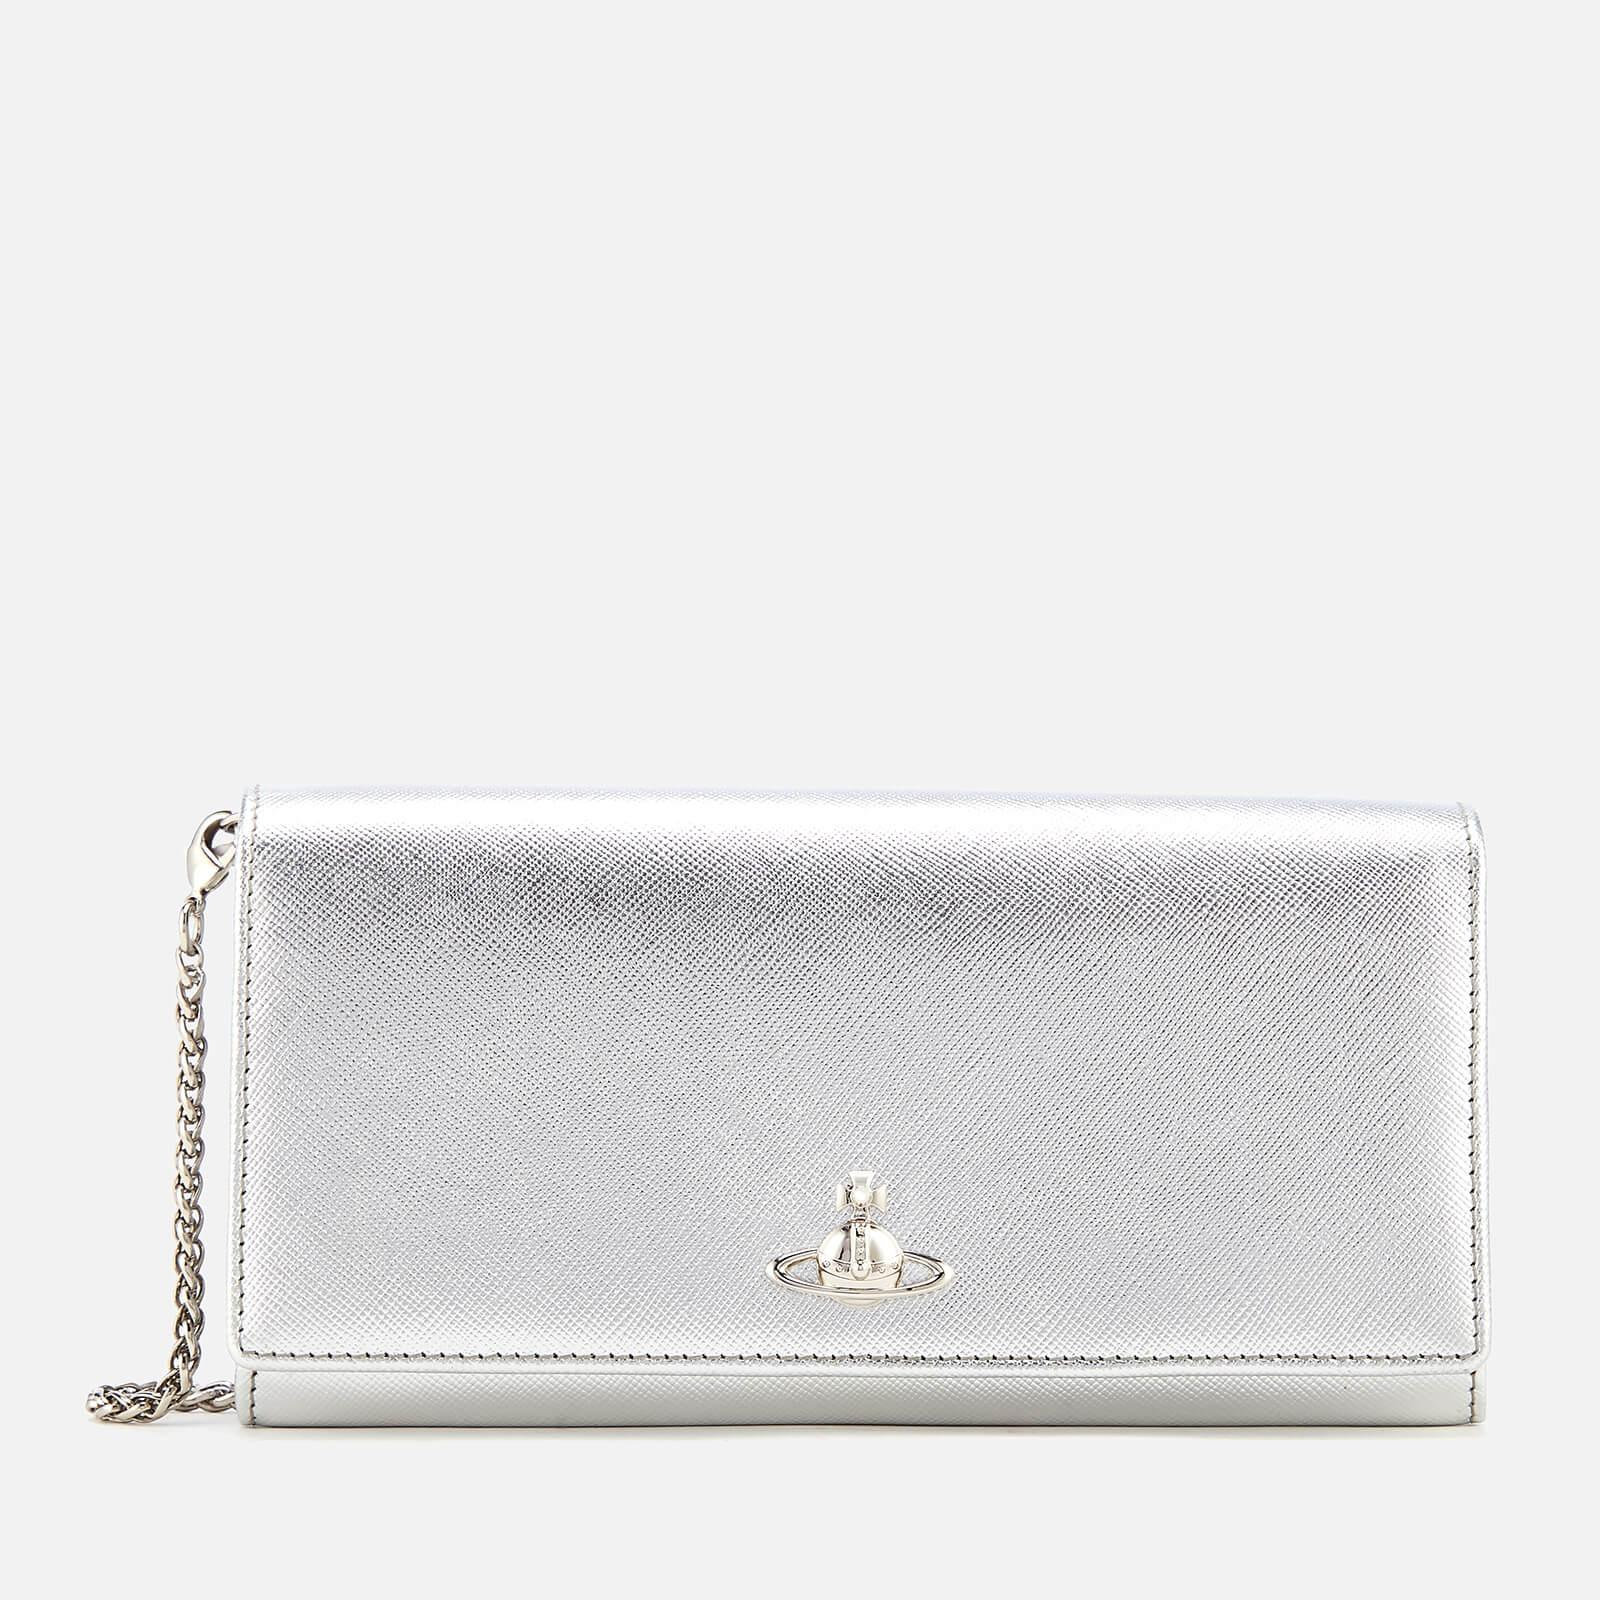 c5d5879abad1 Lyst - Vivienne Westwood Pimlico Long Wallet With Chain